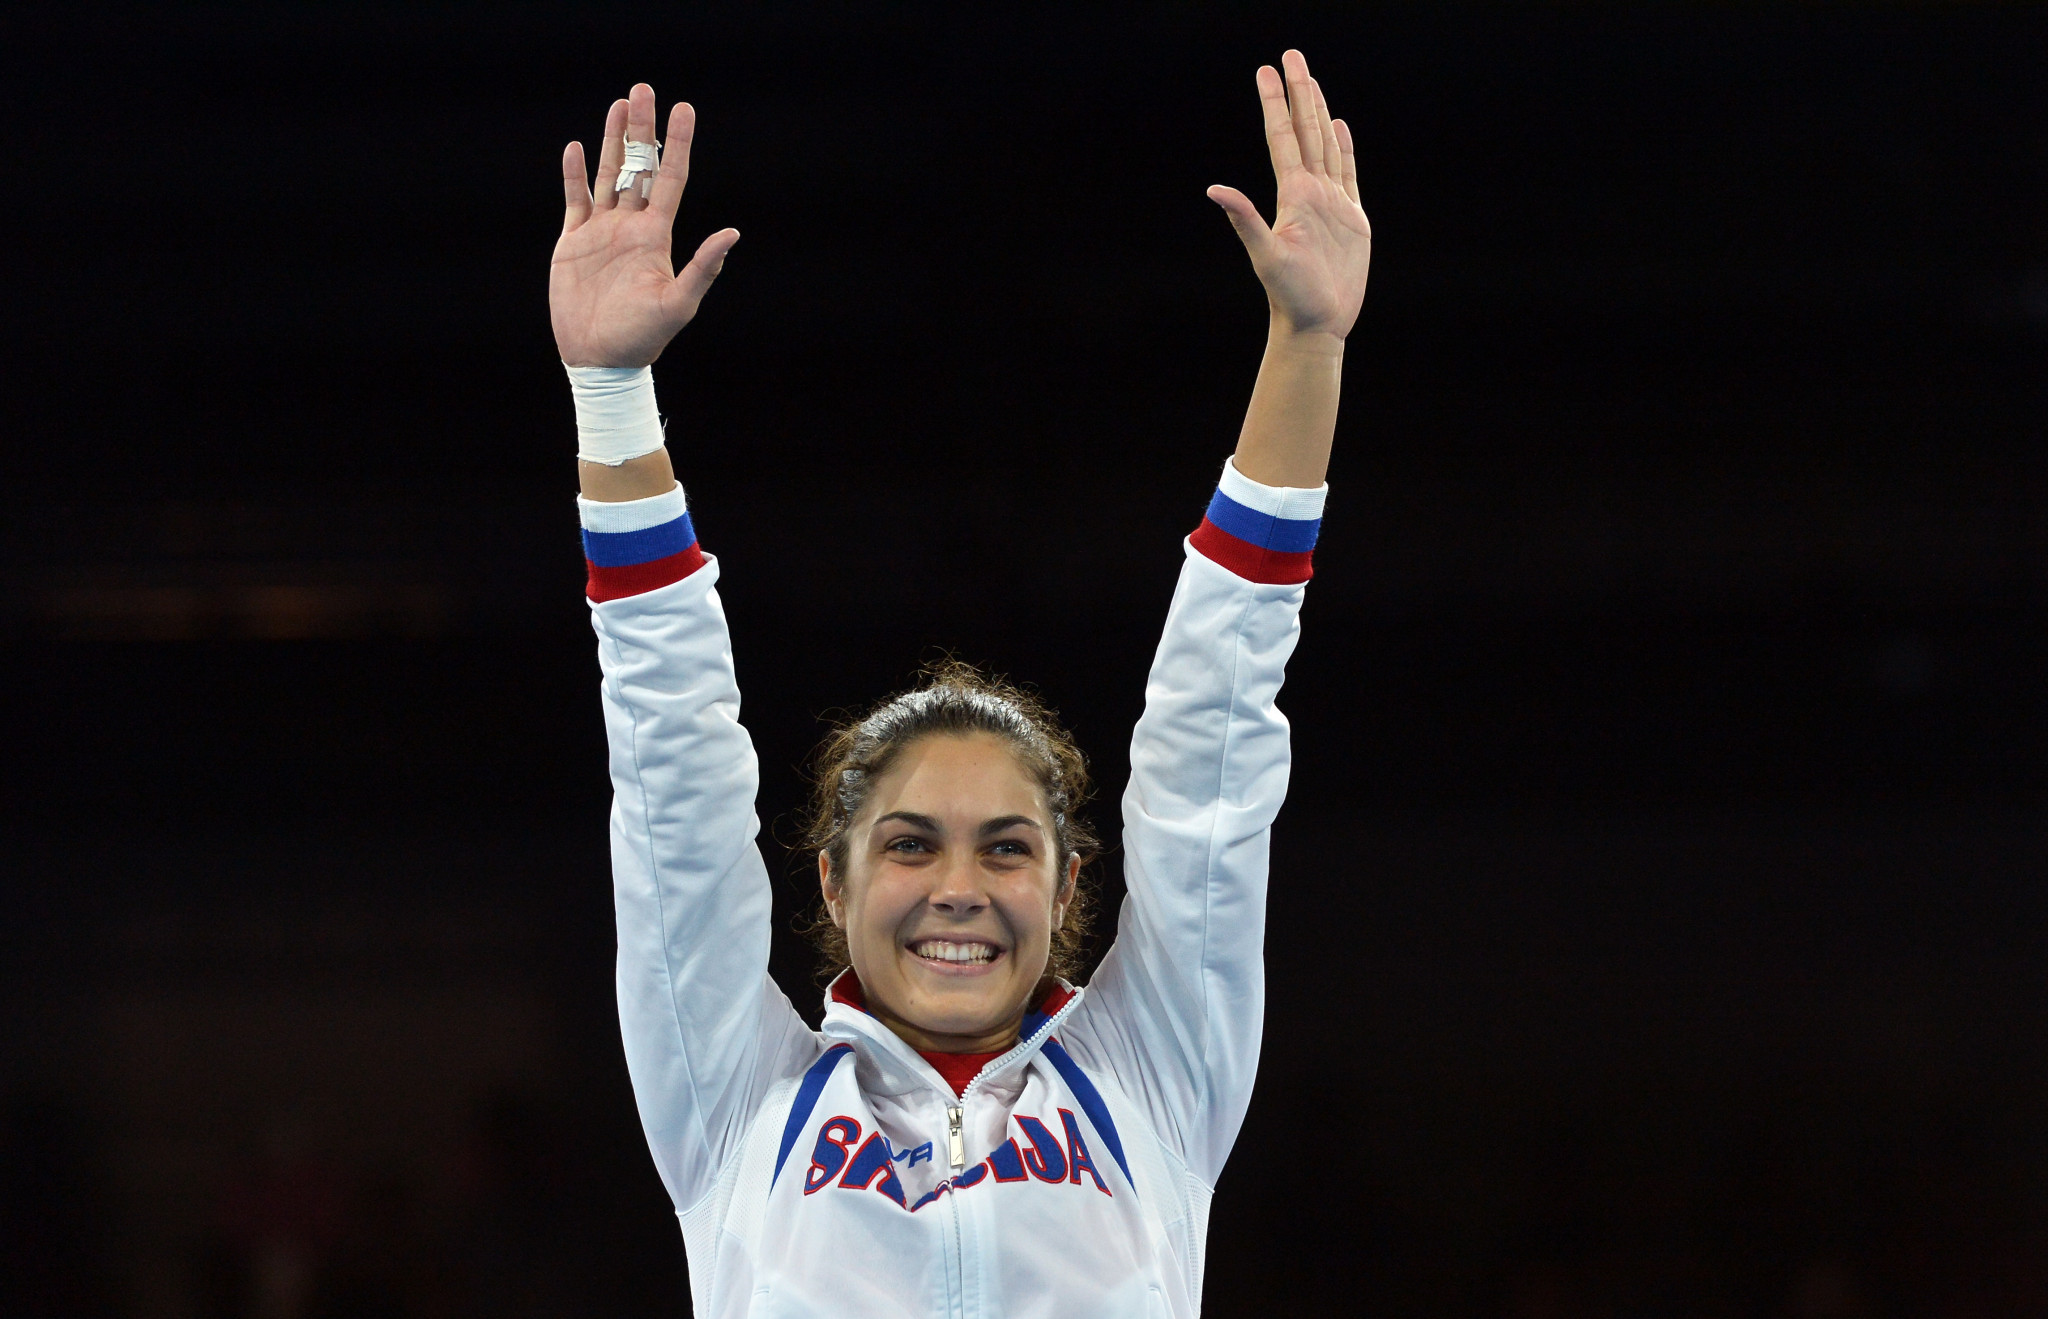 Milica Mandić is the first athlete from Serbia to have won an Olympic gold medal ©Getty Images